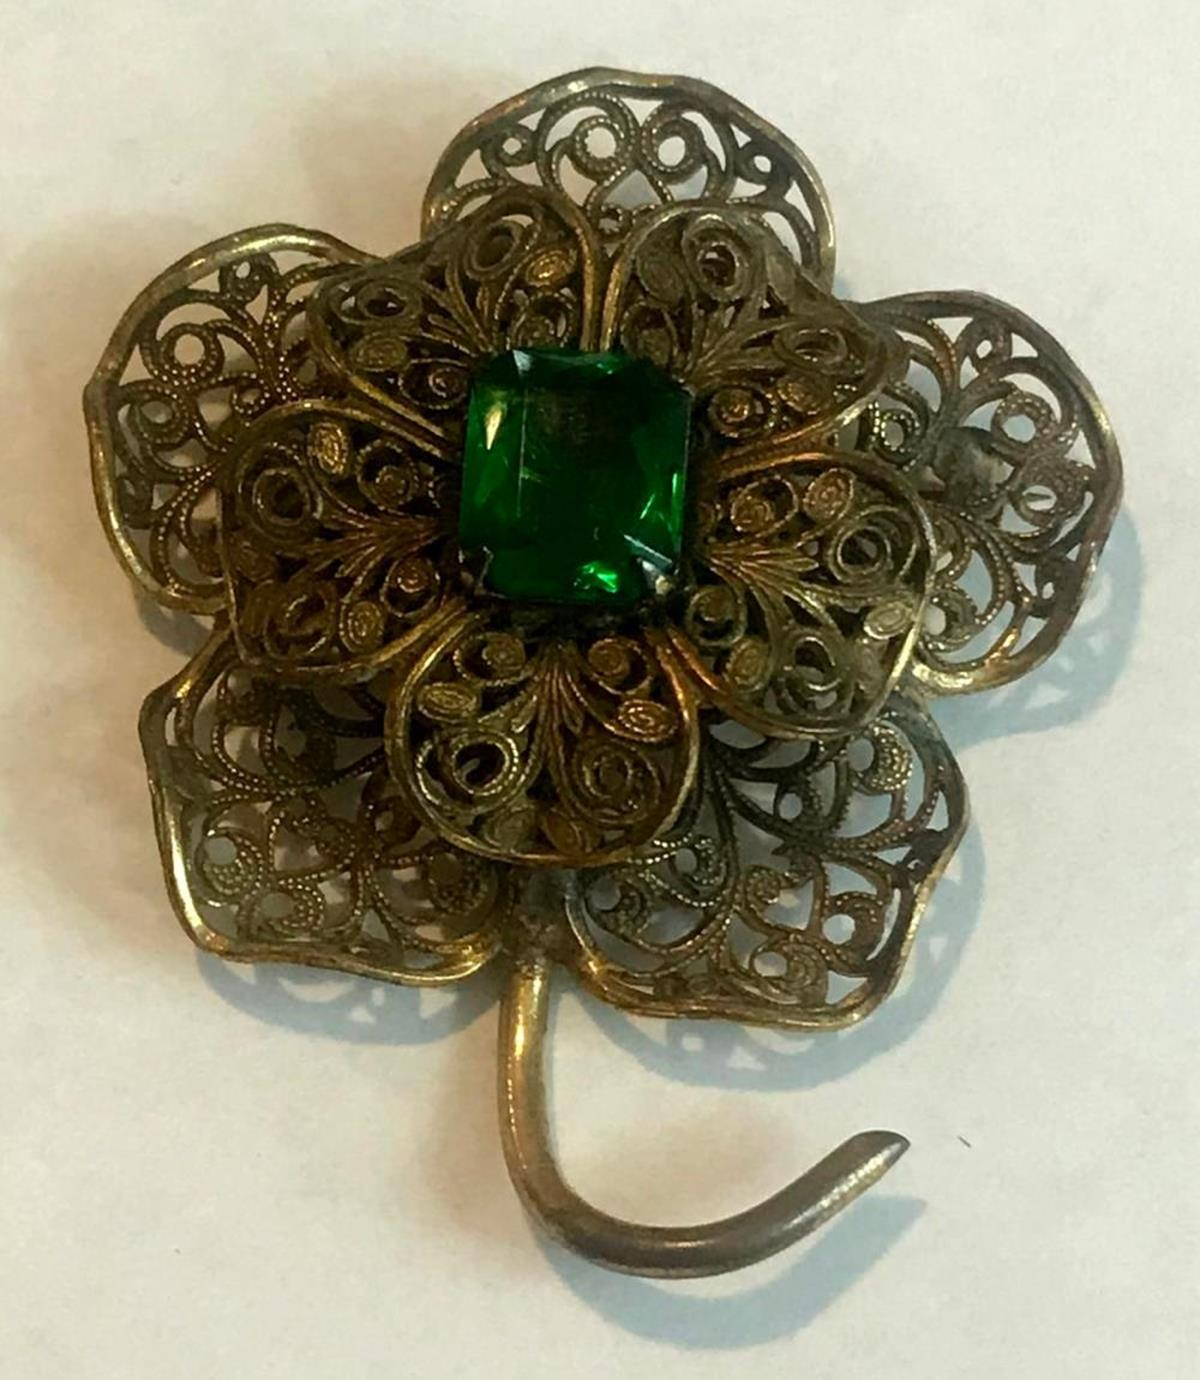 Vintage Pressed Brass Filigree Flower Brooch W/ Green Accent Stone